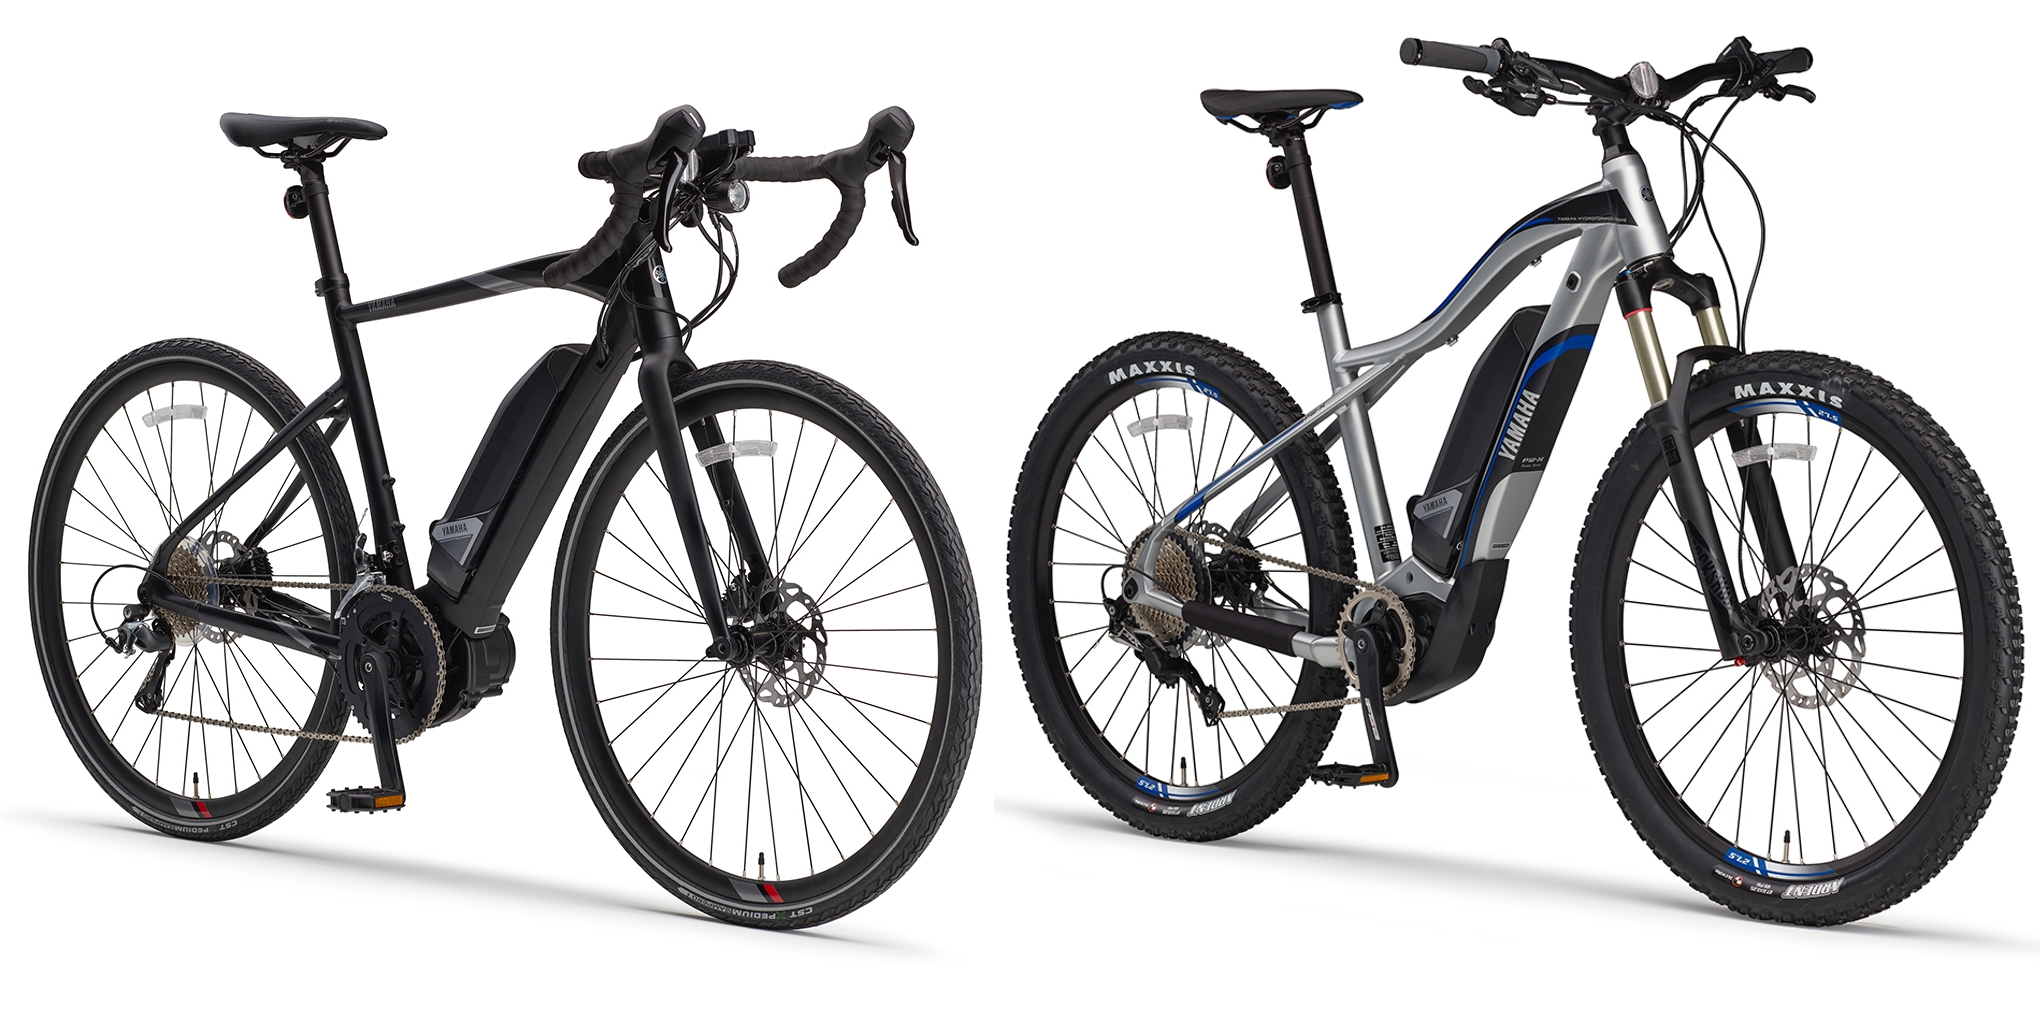 photo E-Bikes: 4 Models You Should Know About